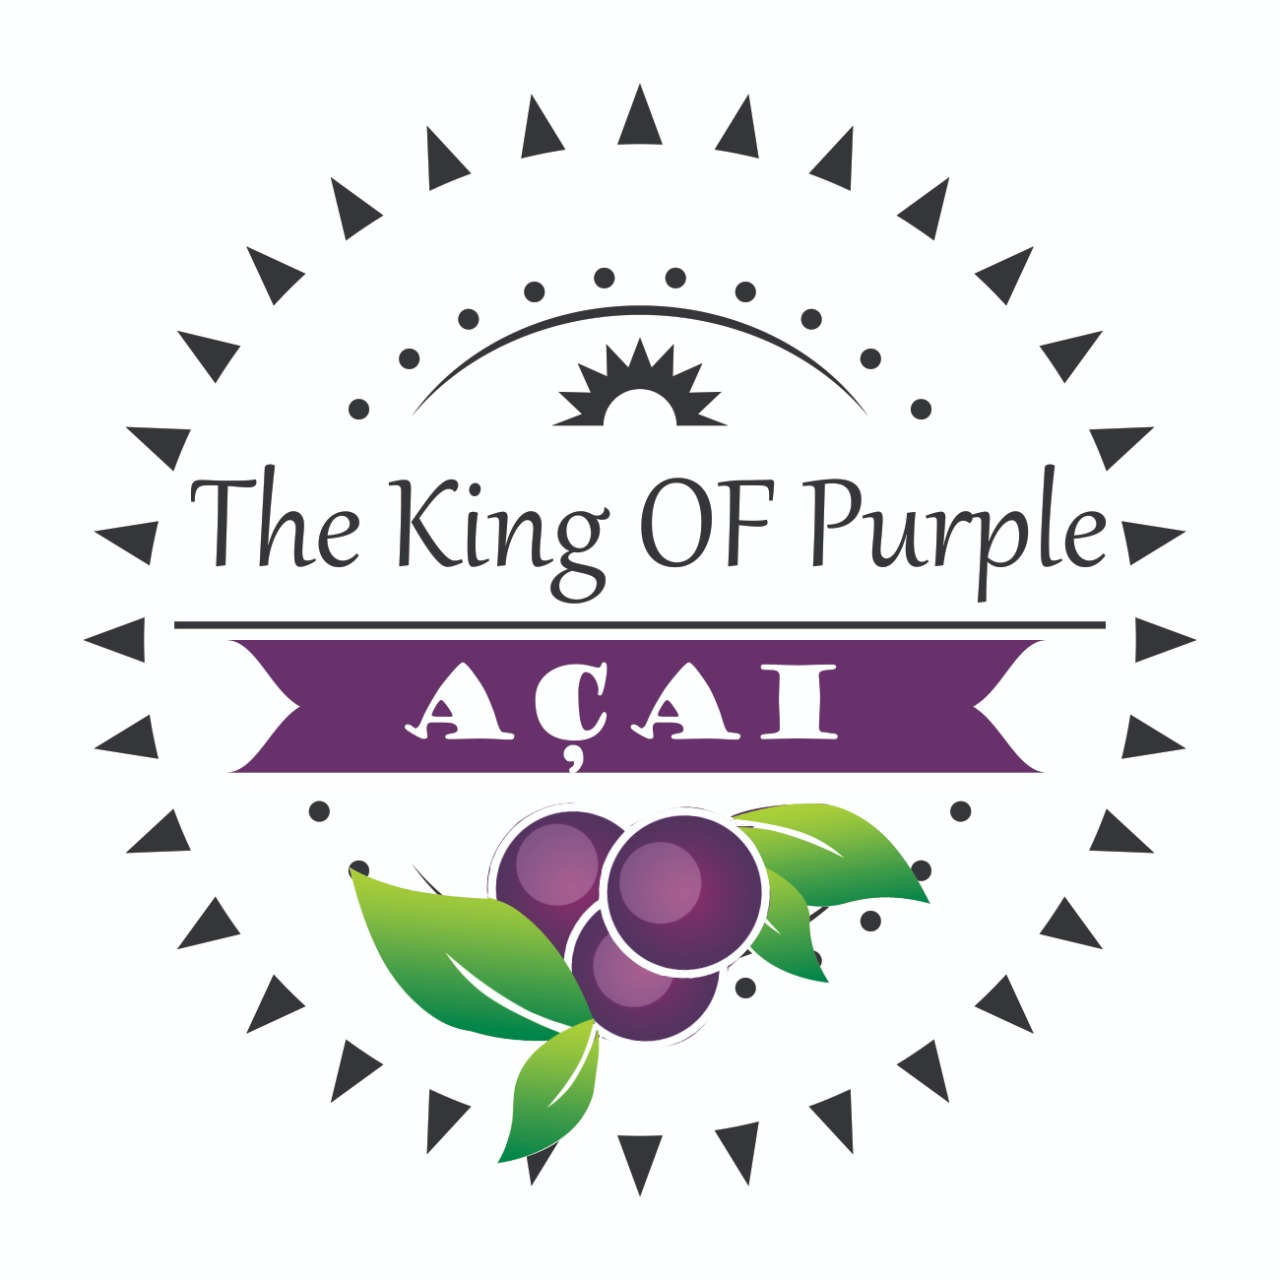 Logo-Loja de Açaí - The King of Purple Açaí